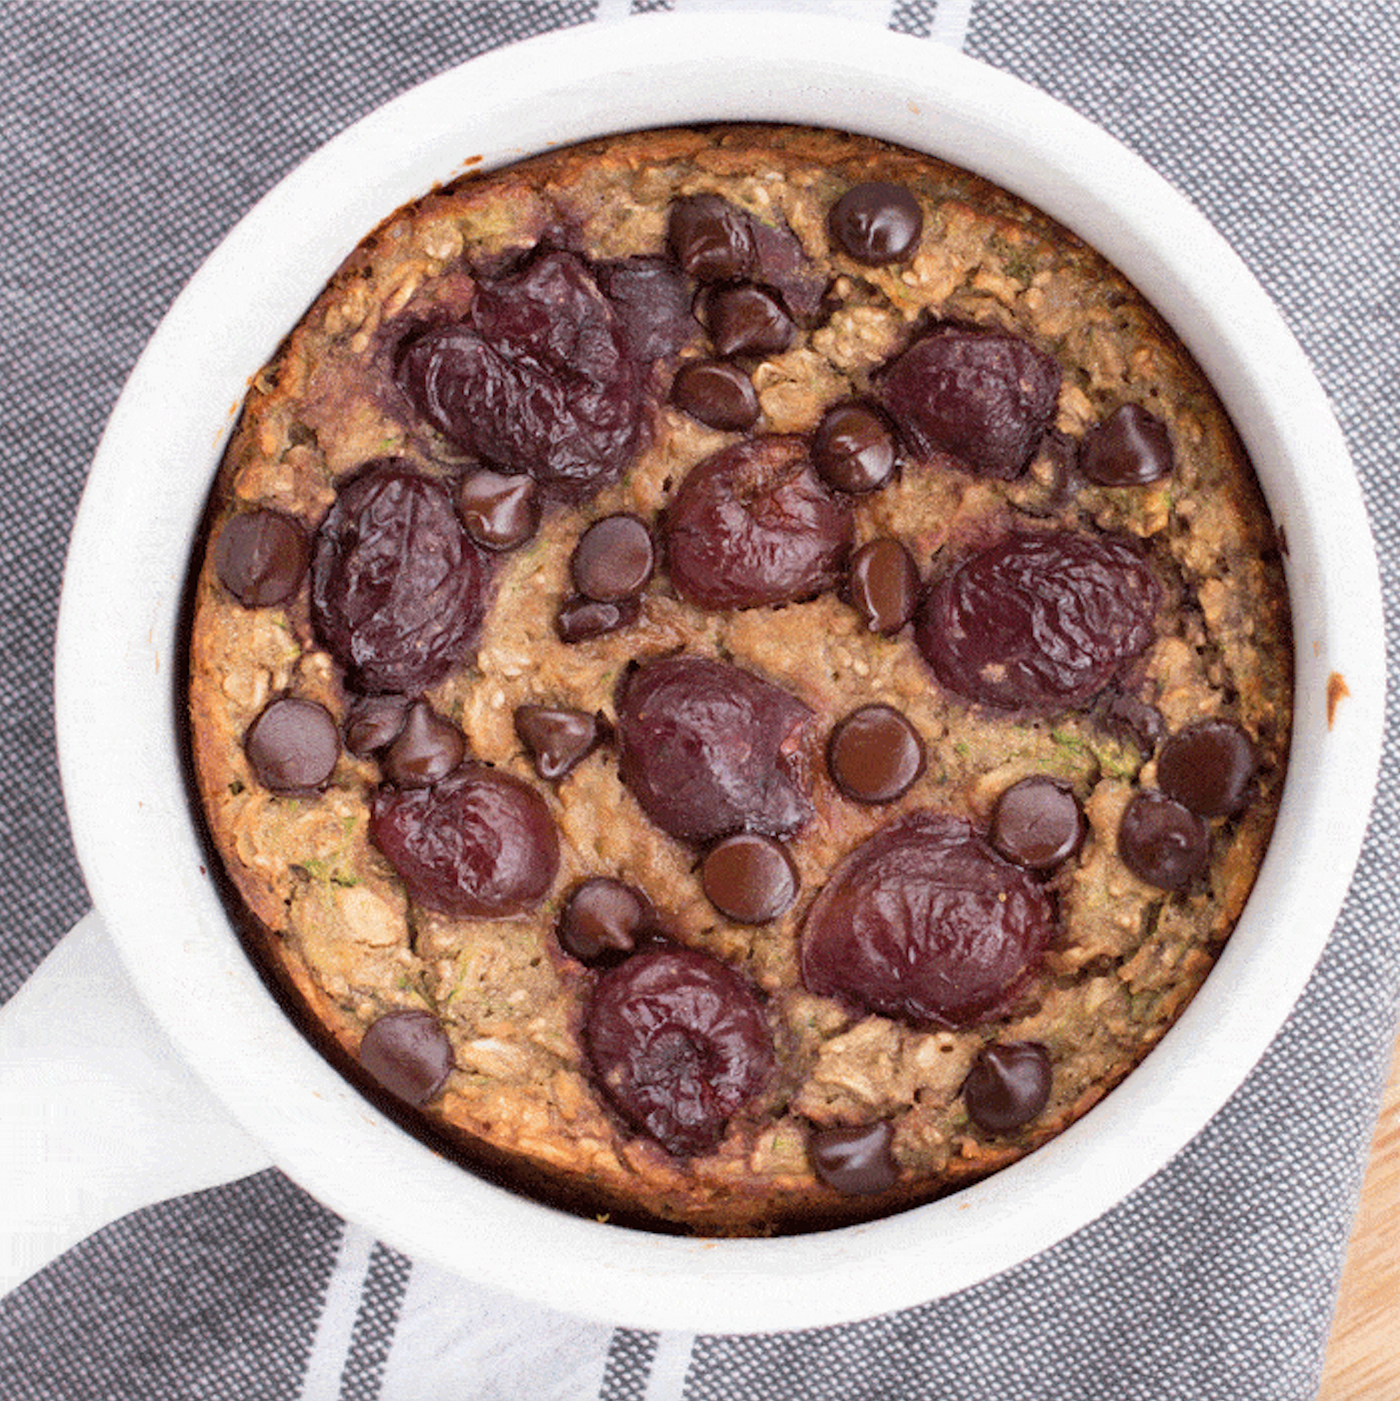 Chocolate Covered Cherry Baked Oatmeal Recipe